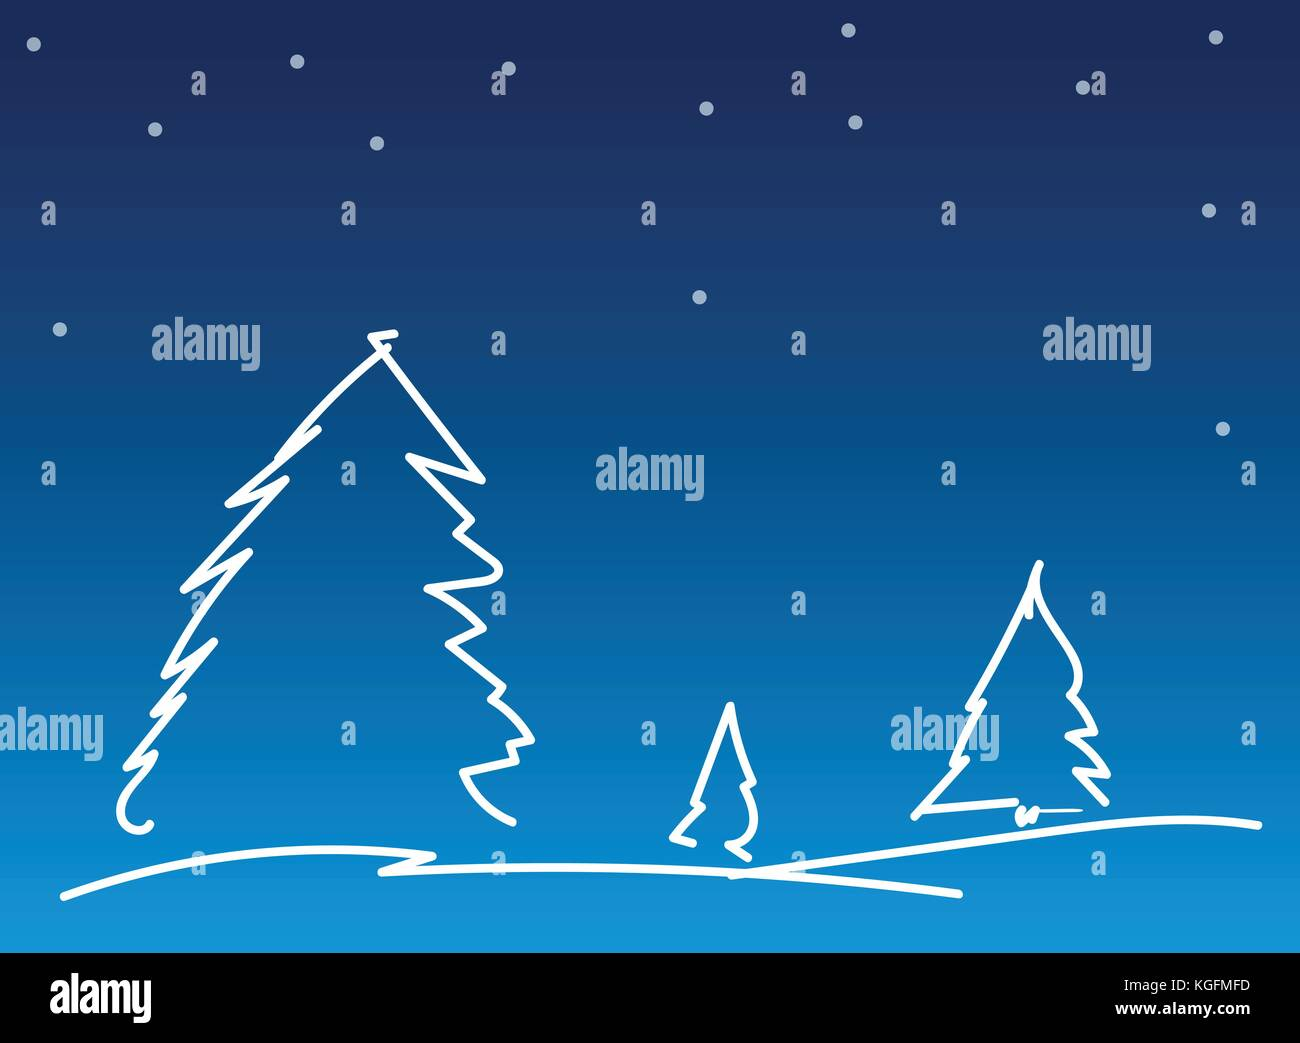 abstract simple line christmas background christmas tree on blue background with snowfall vector background illustration